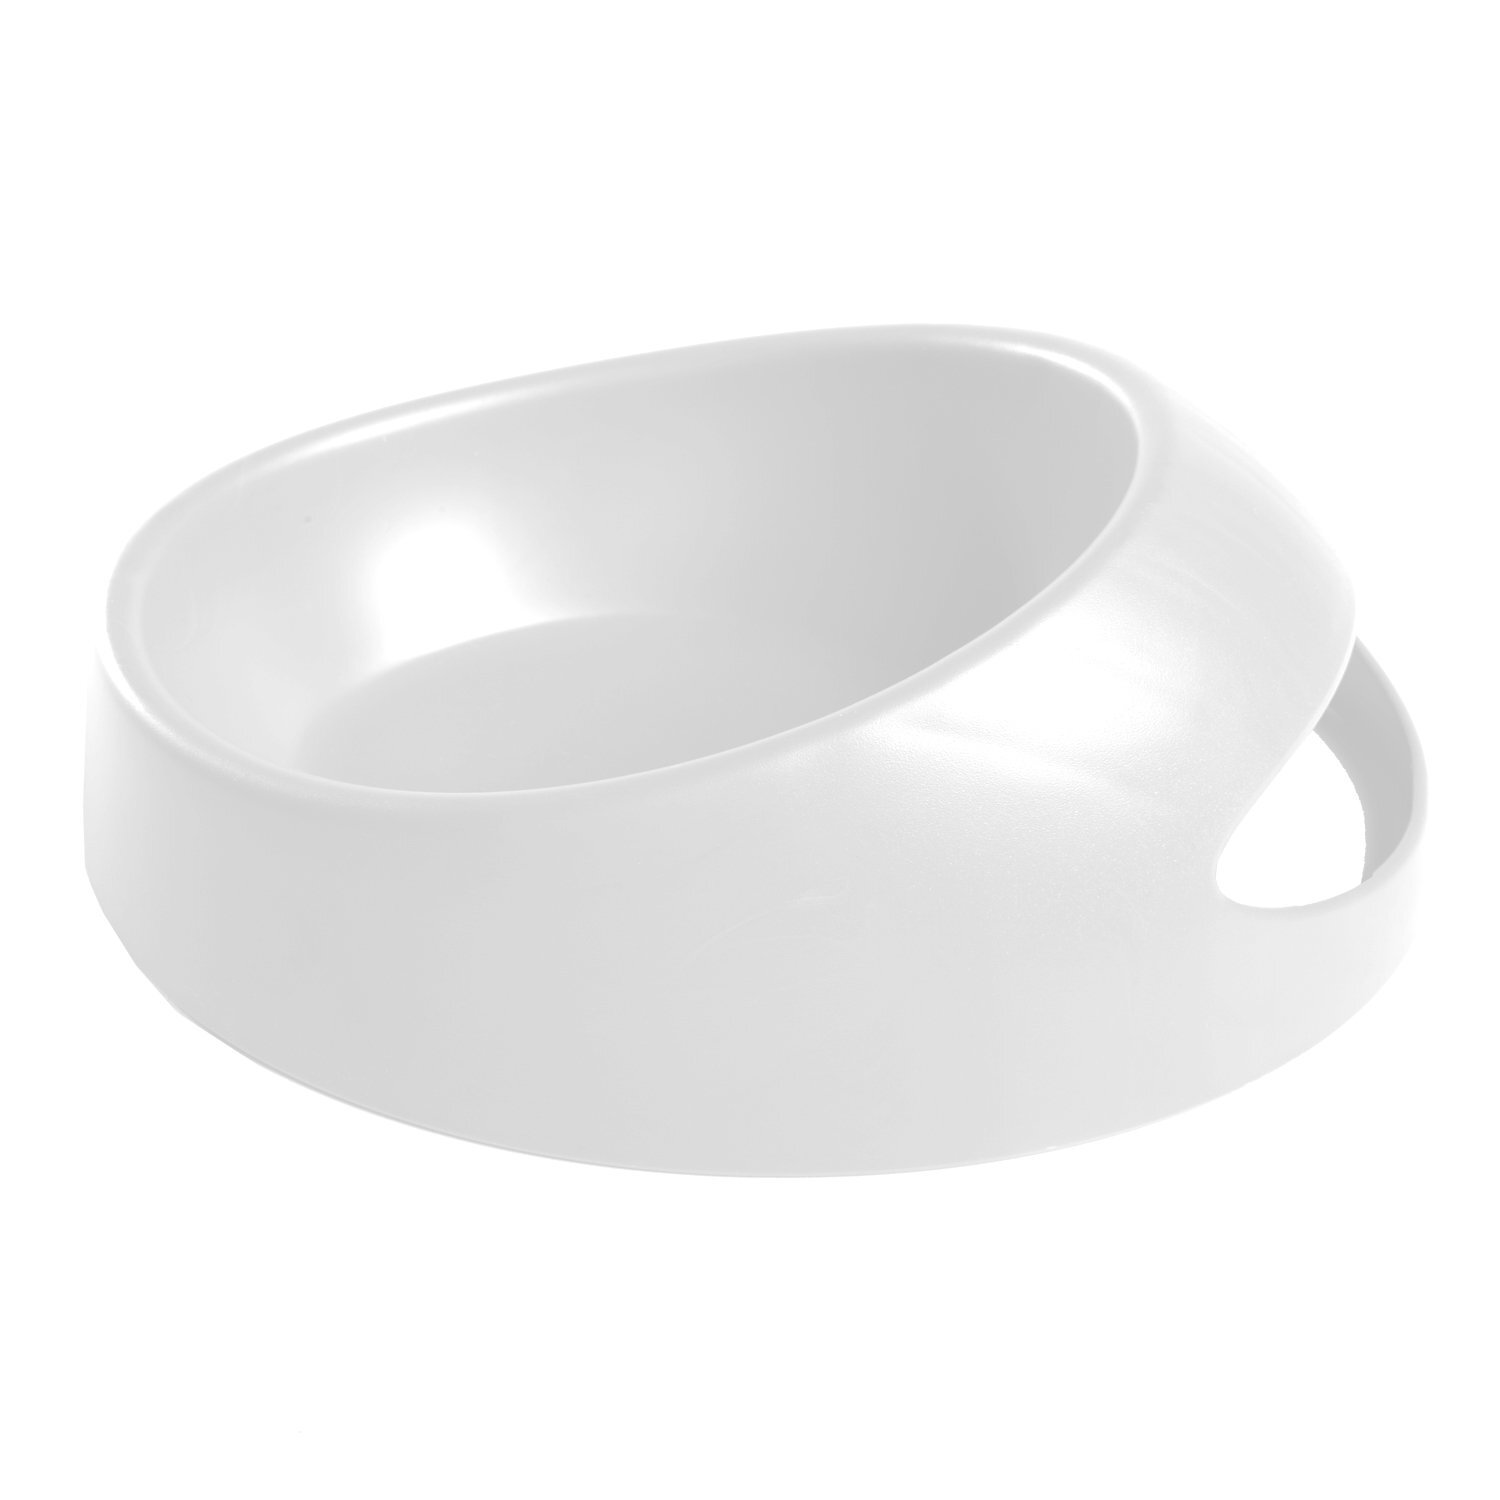 Medium Scoop-it Pet Bowl